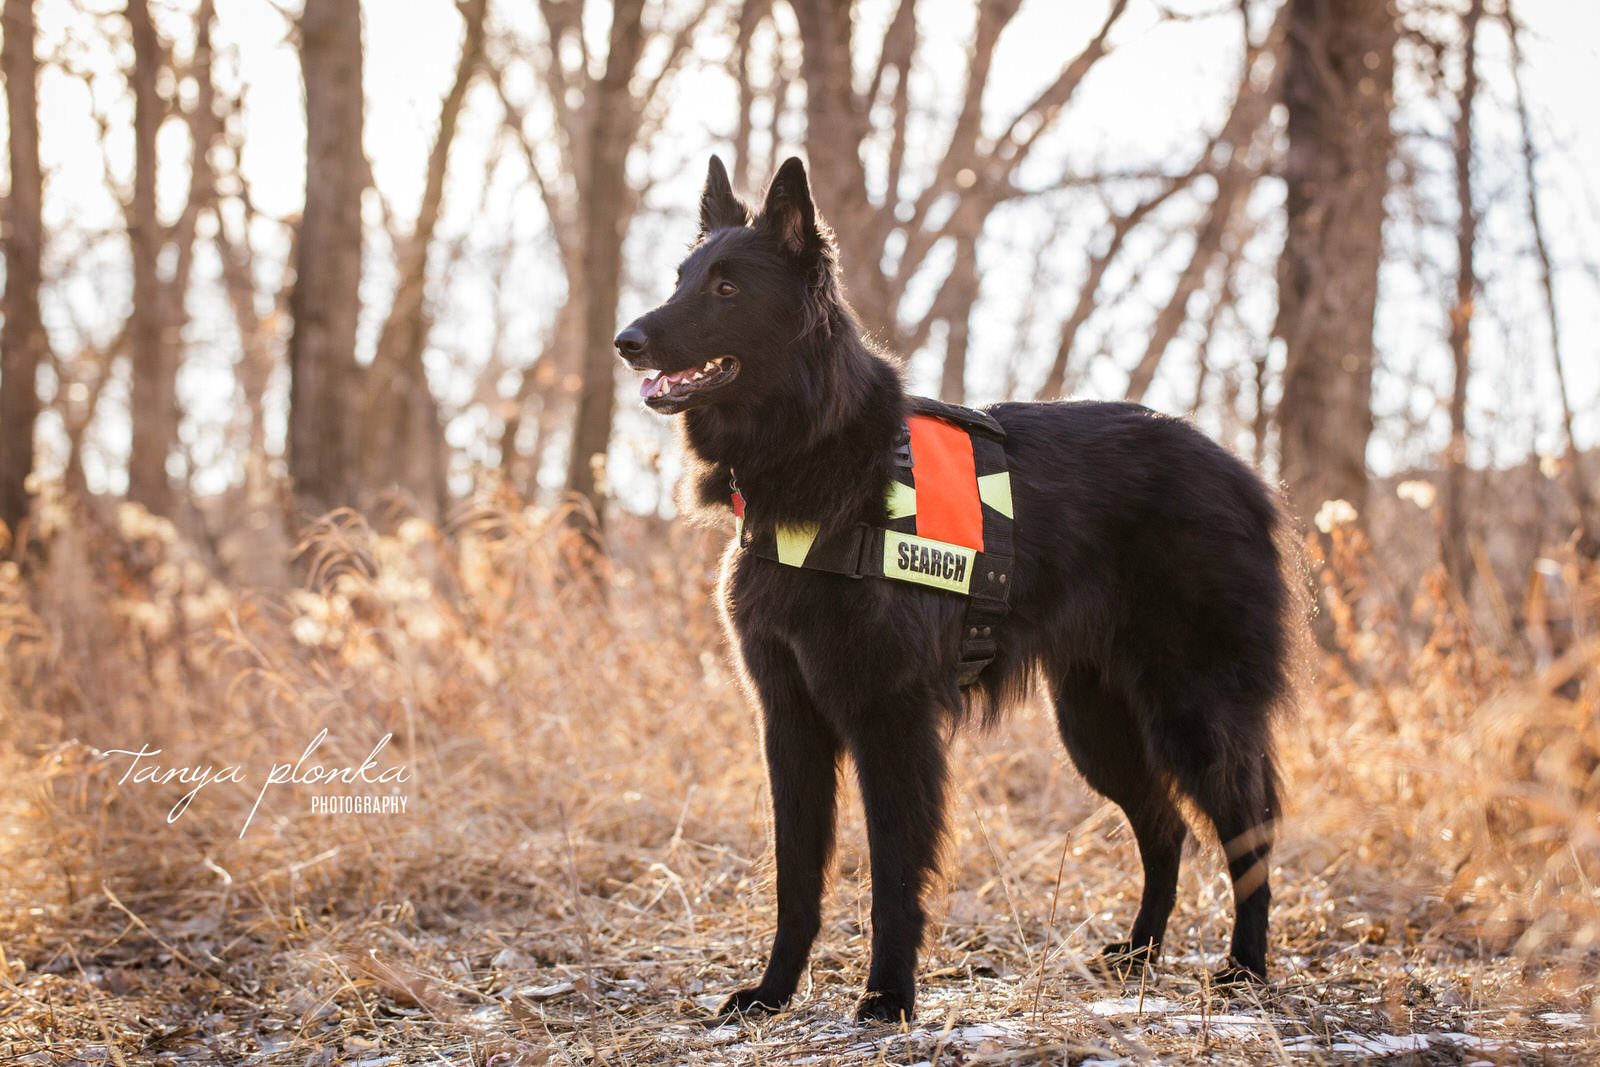 Belgian Shepherd poses with his search and rescue gear on in Indian Battle Park